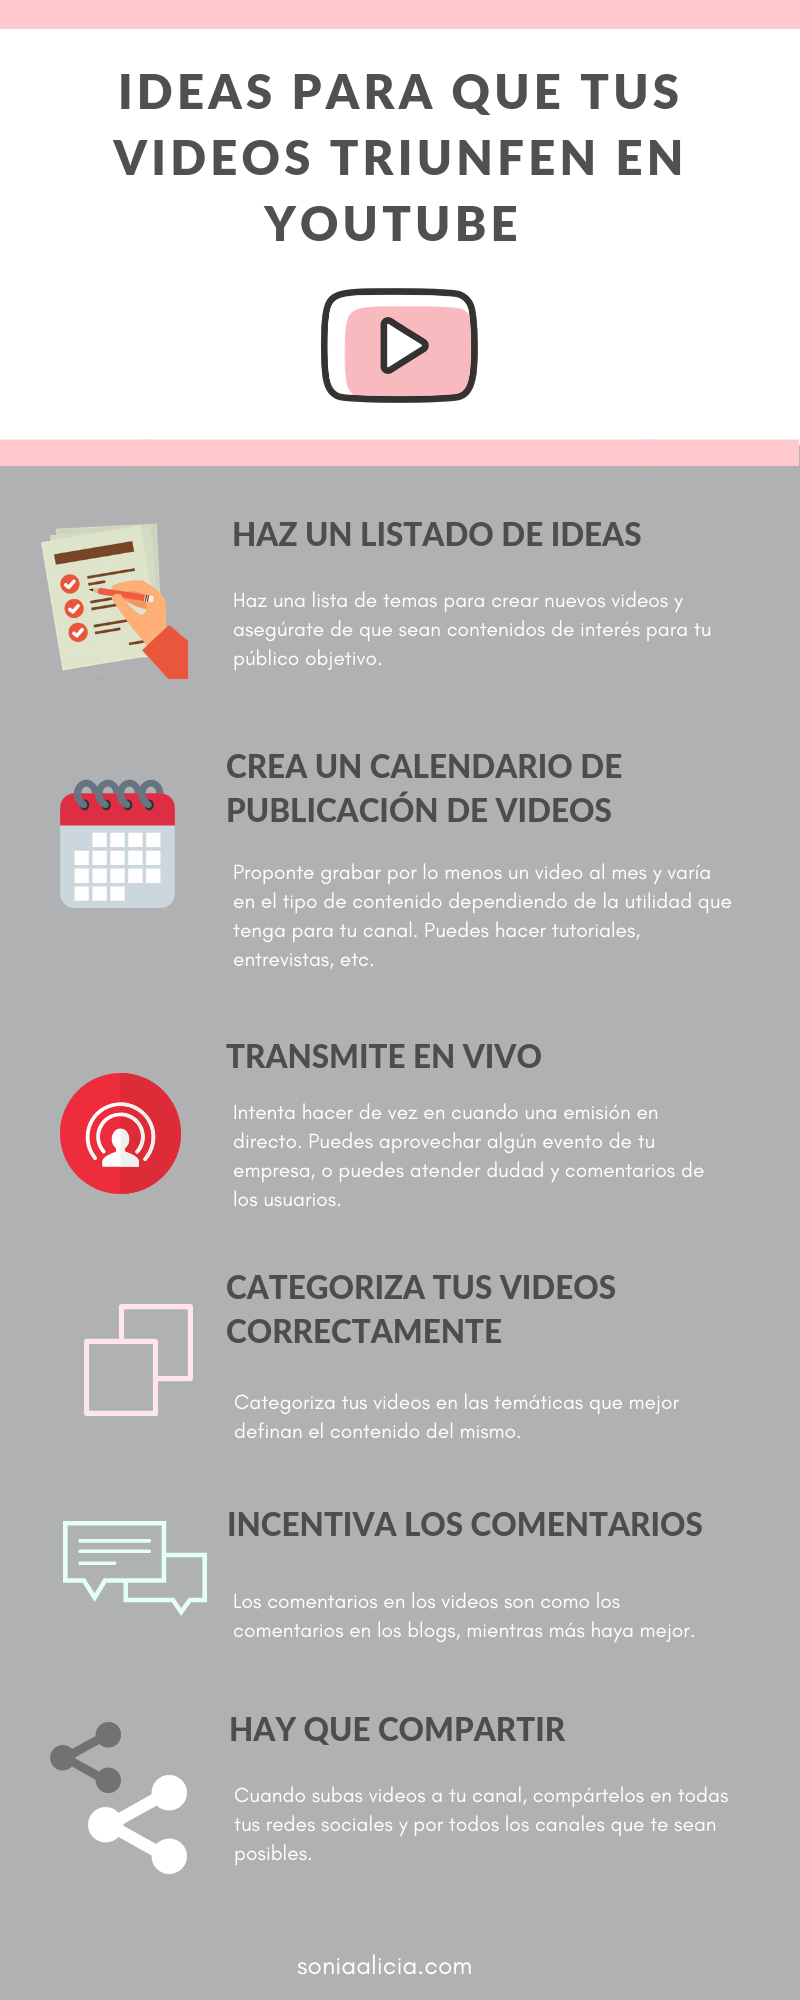 100 Ideas De Videos Para Youtube Trucos De Youtube Consejos De Blog Ideas Para Vídeos De Youtube